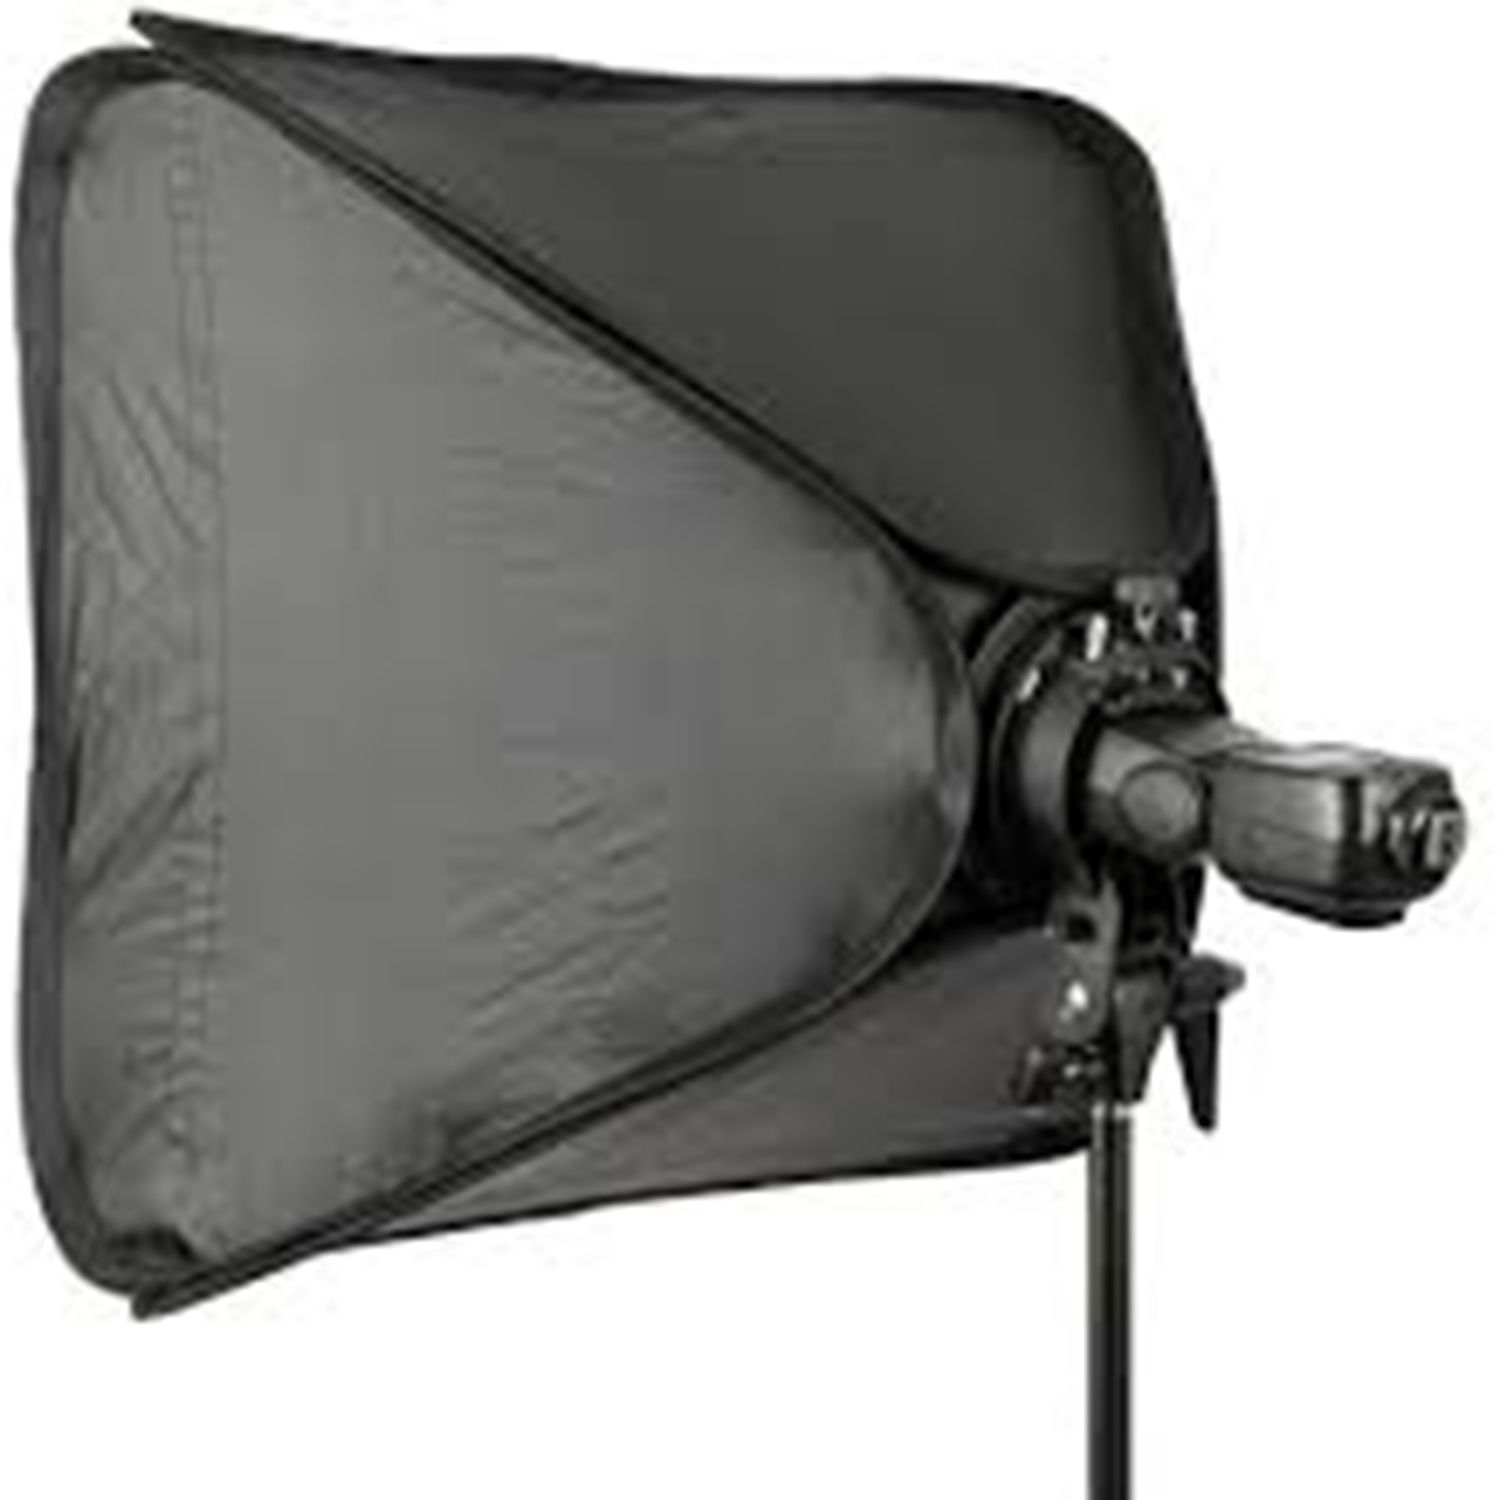 Softbox P/ Flash Speedlight 60x60 Godox / Dobravel